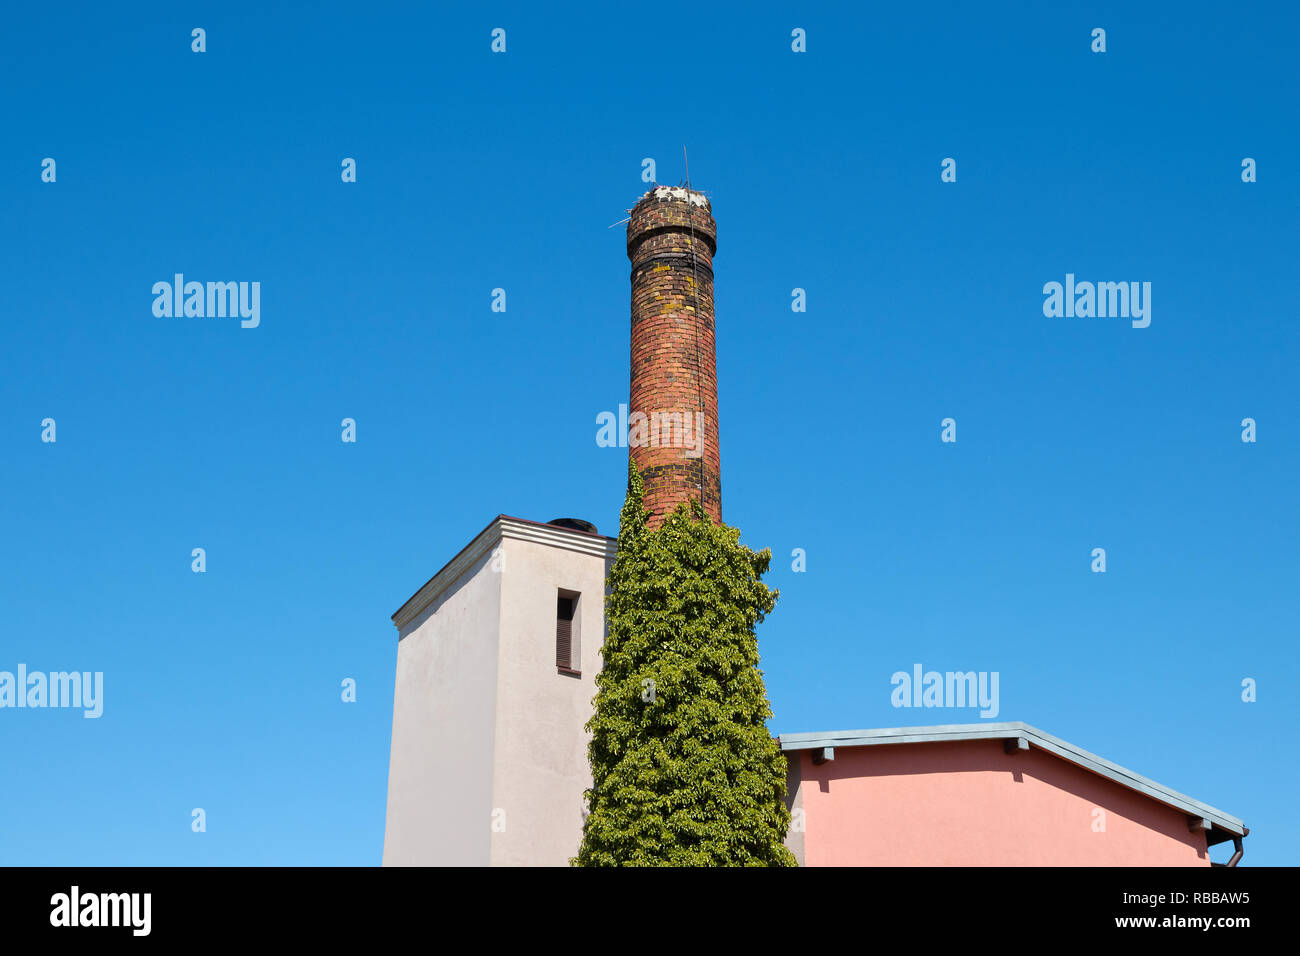 Old brick chimney against the blue cloudless sky. - Stock Image